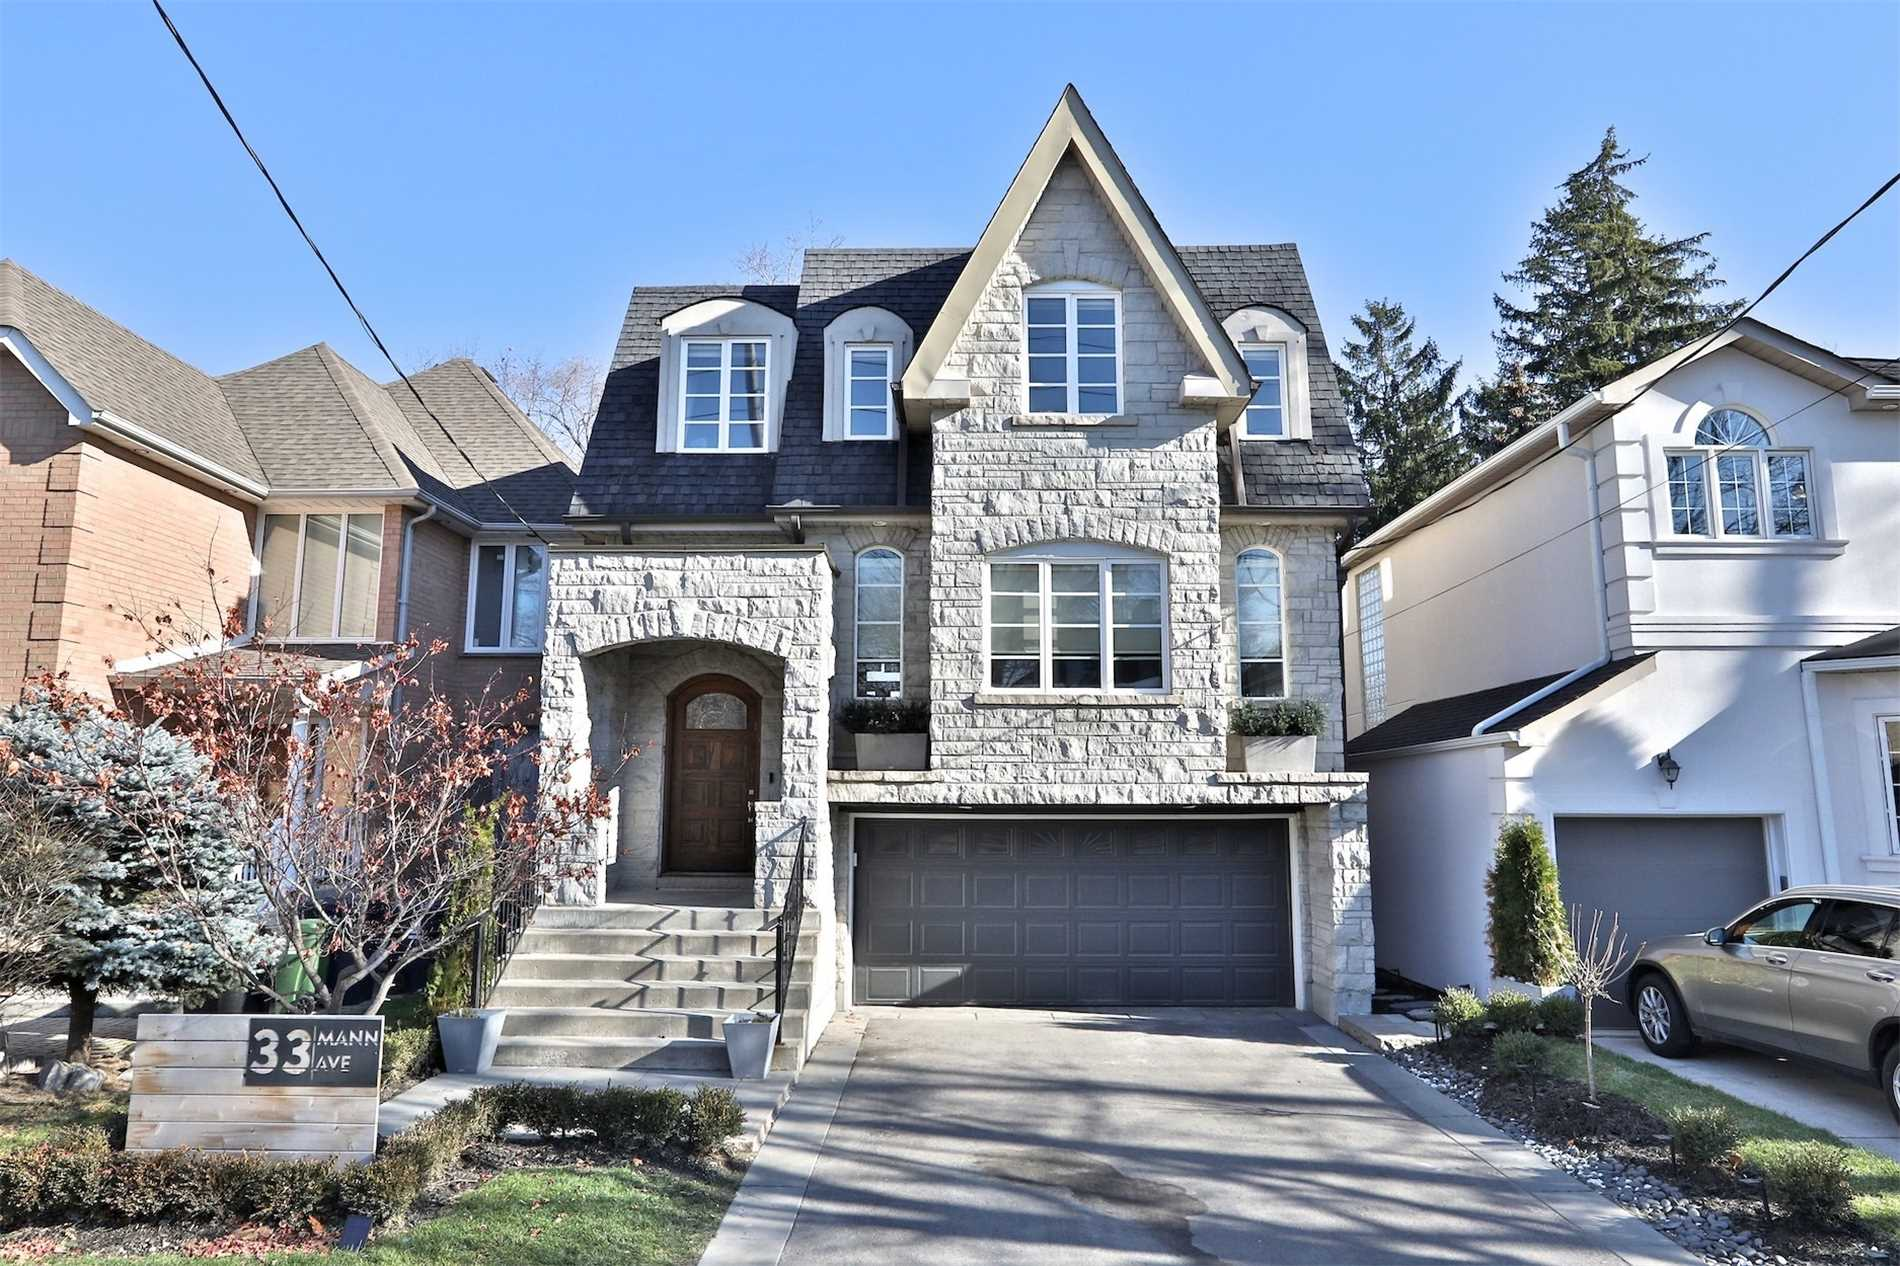 33 Mann Ave, Toronto, Ontario M4S2Y2, 4 Bedrooms Bedrooms, 9 Rooms Rooms,4 BathroomsBathrooms,Detached,For Sale,Mann,C5055040